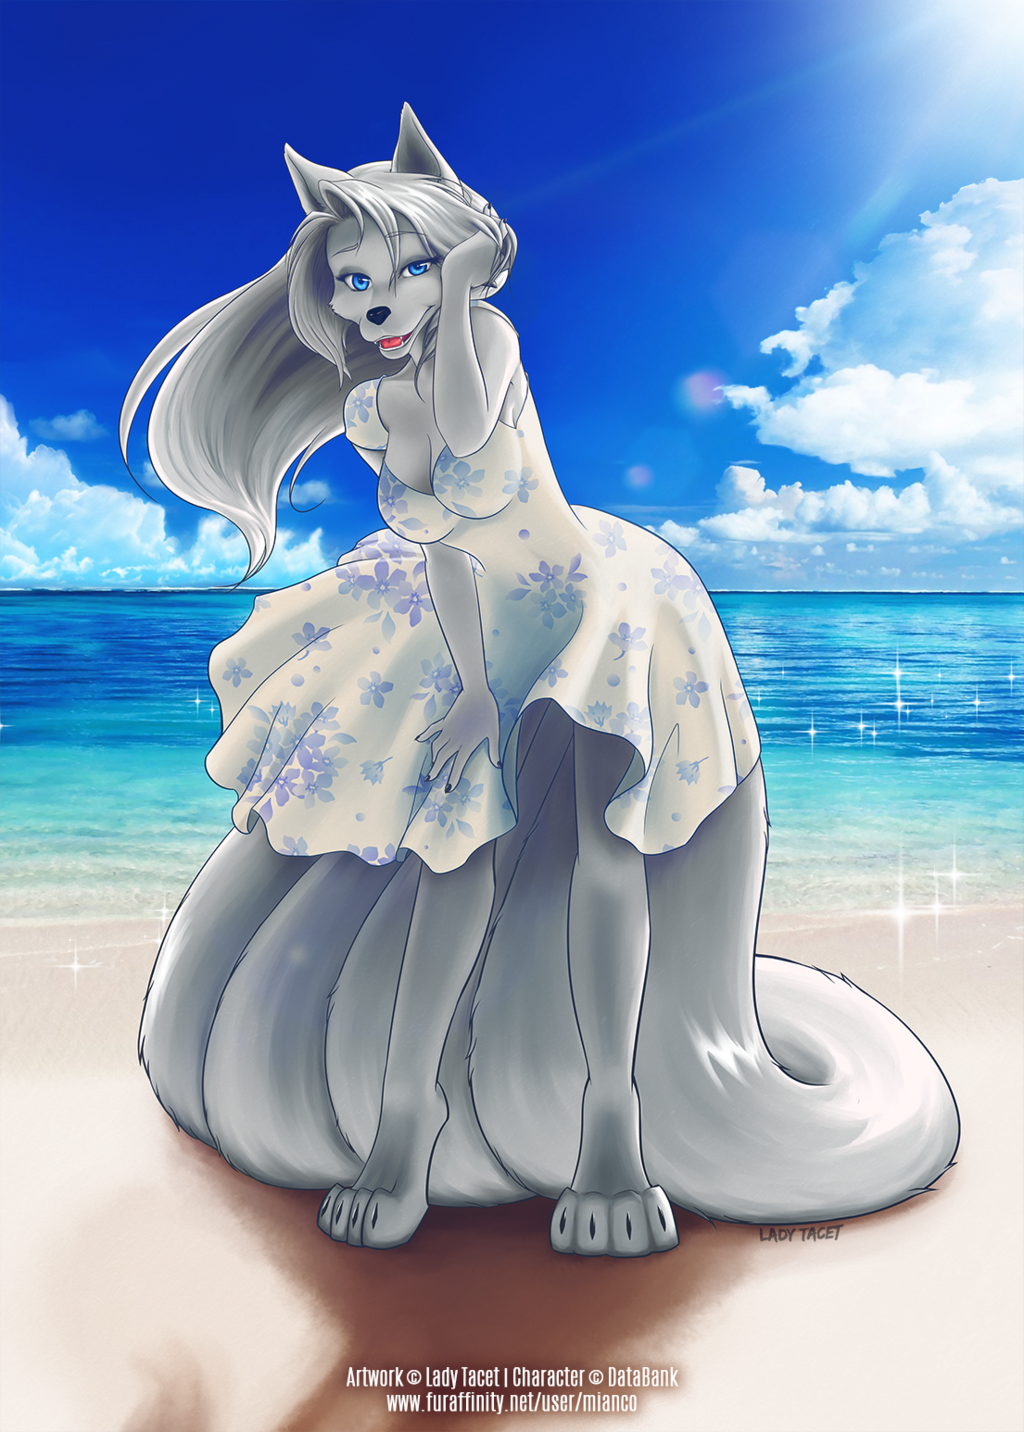 Most recent image: A day at the beach